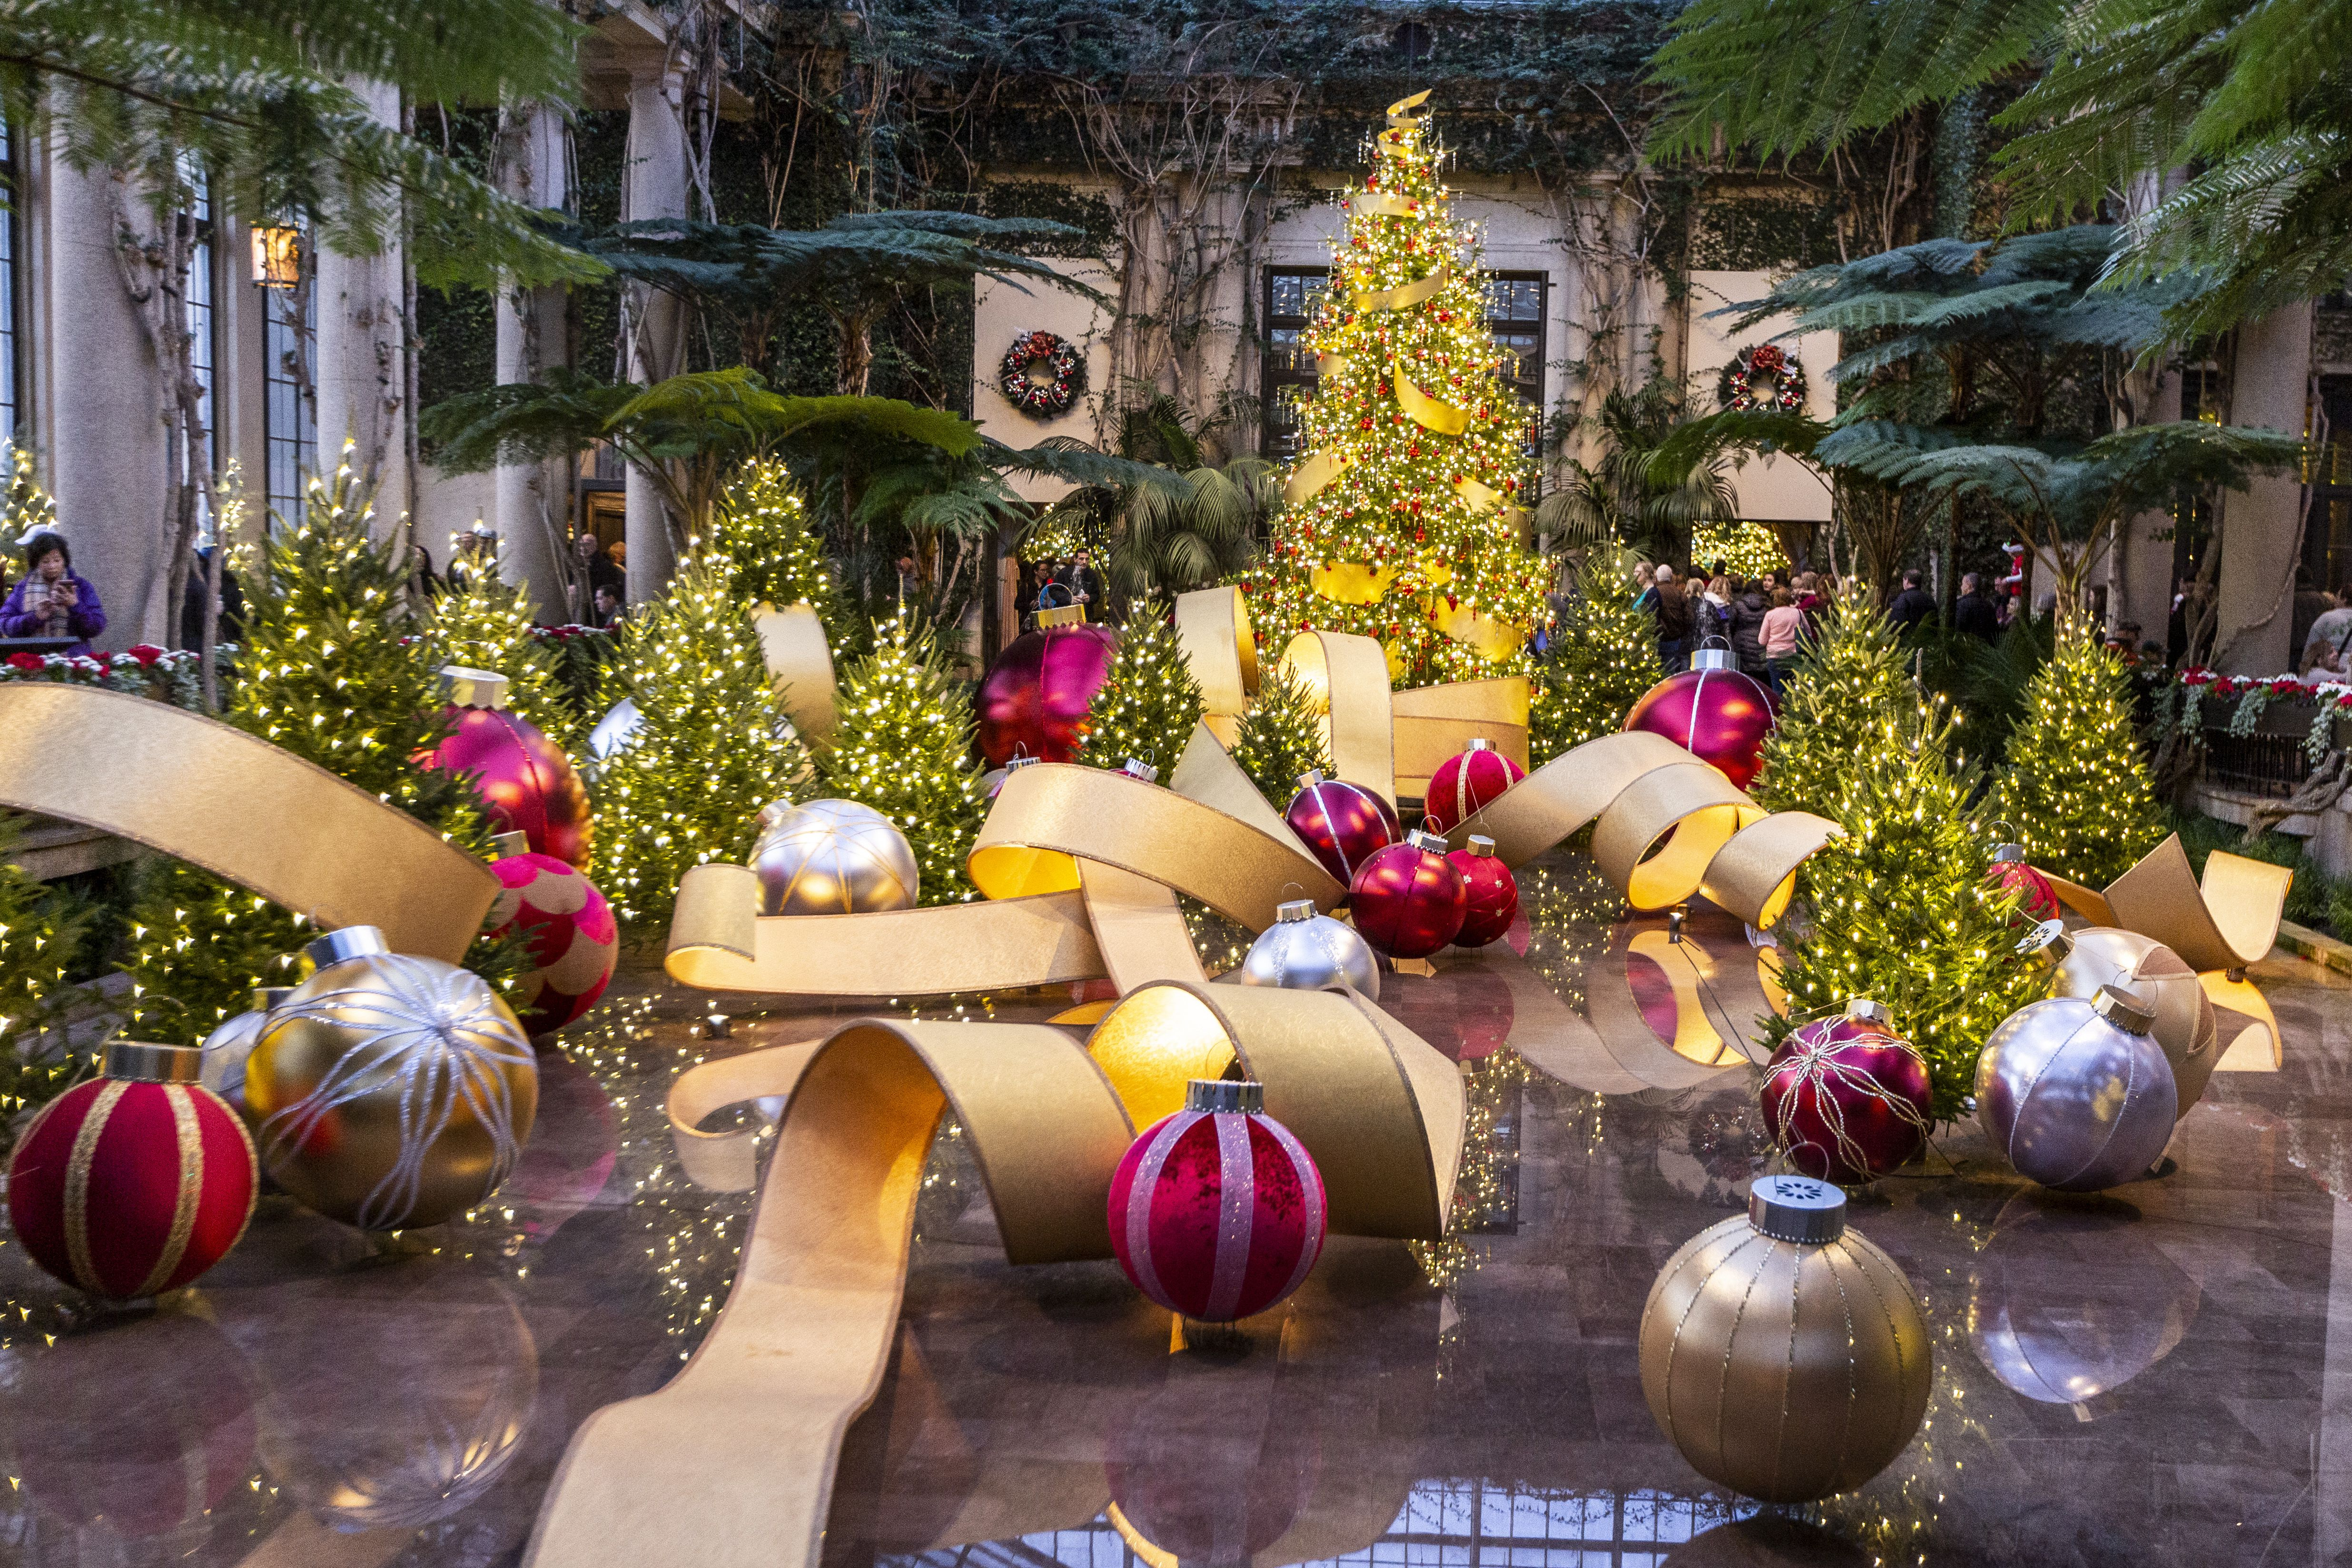 Where Is Longwood Gardens Christmas 2020 Longwood Gardens to bring back massive Christmas display in